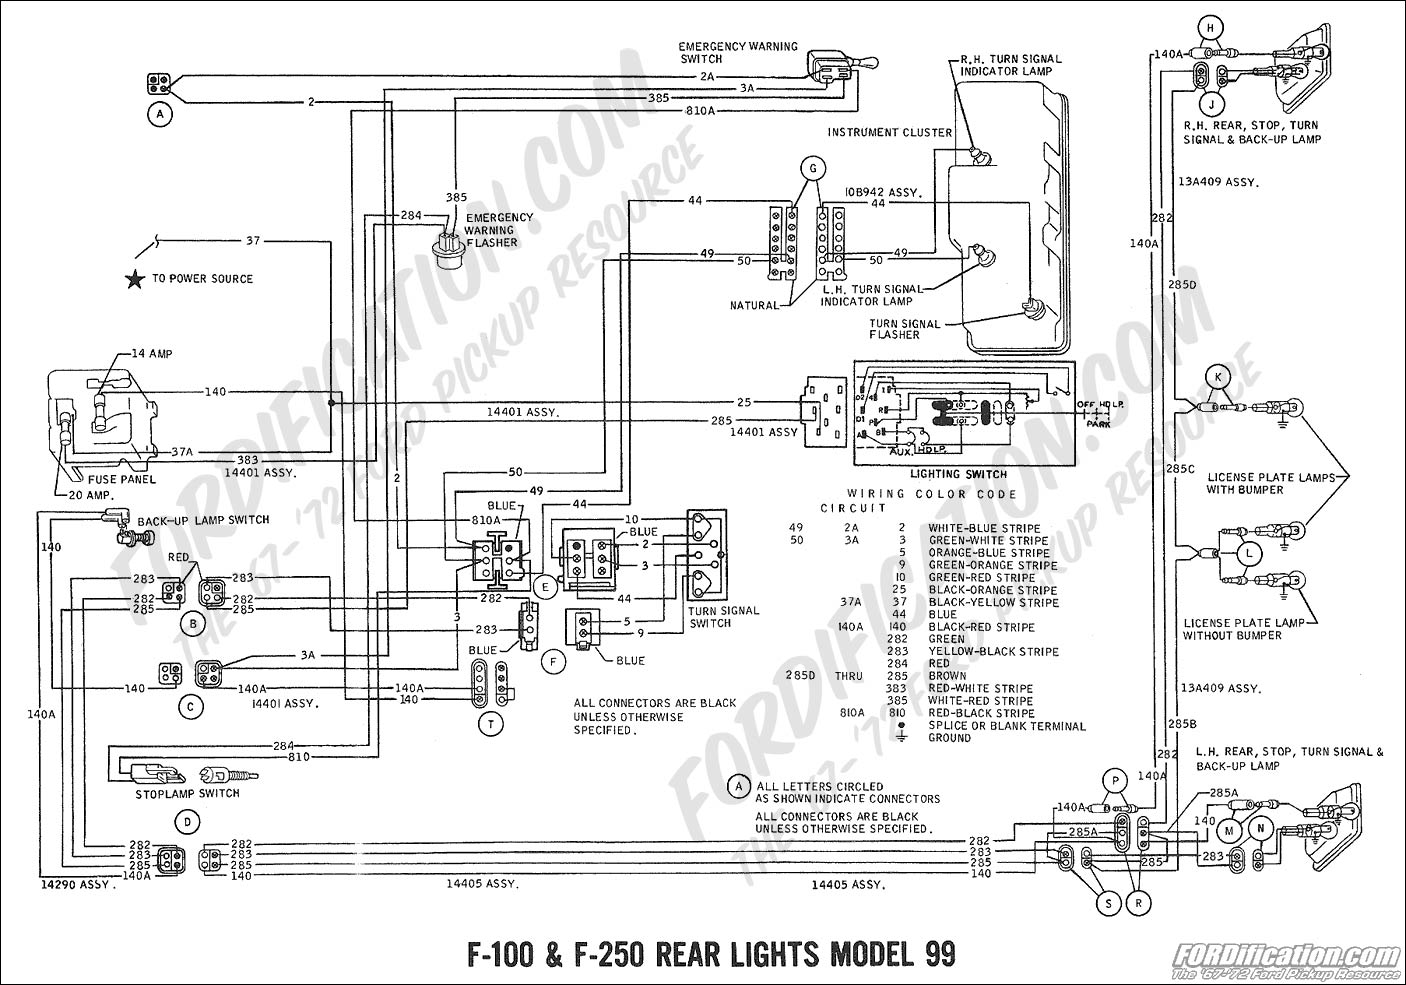 Car Light Circuit Page 2 Automotive Circuits Add Beautiful Brake Lights By Bc327 99 Civic Wiring Diagram Courtesy